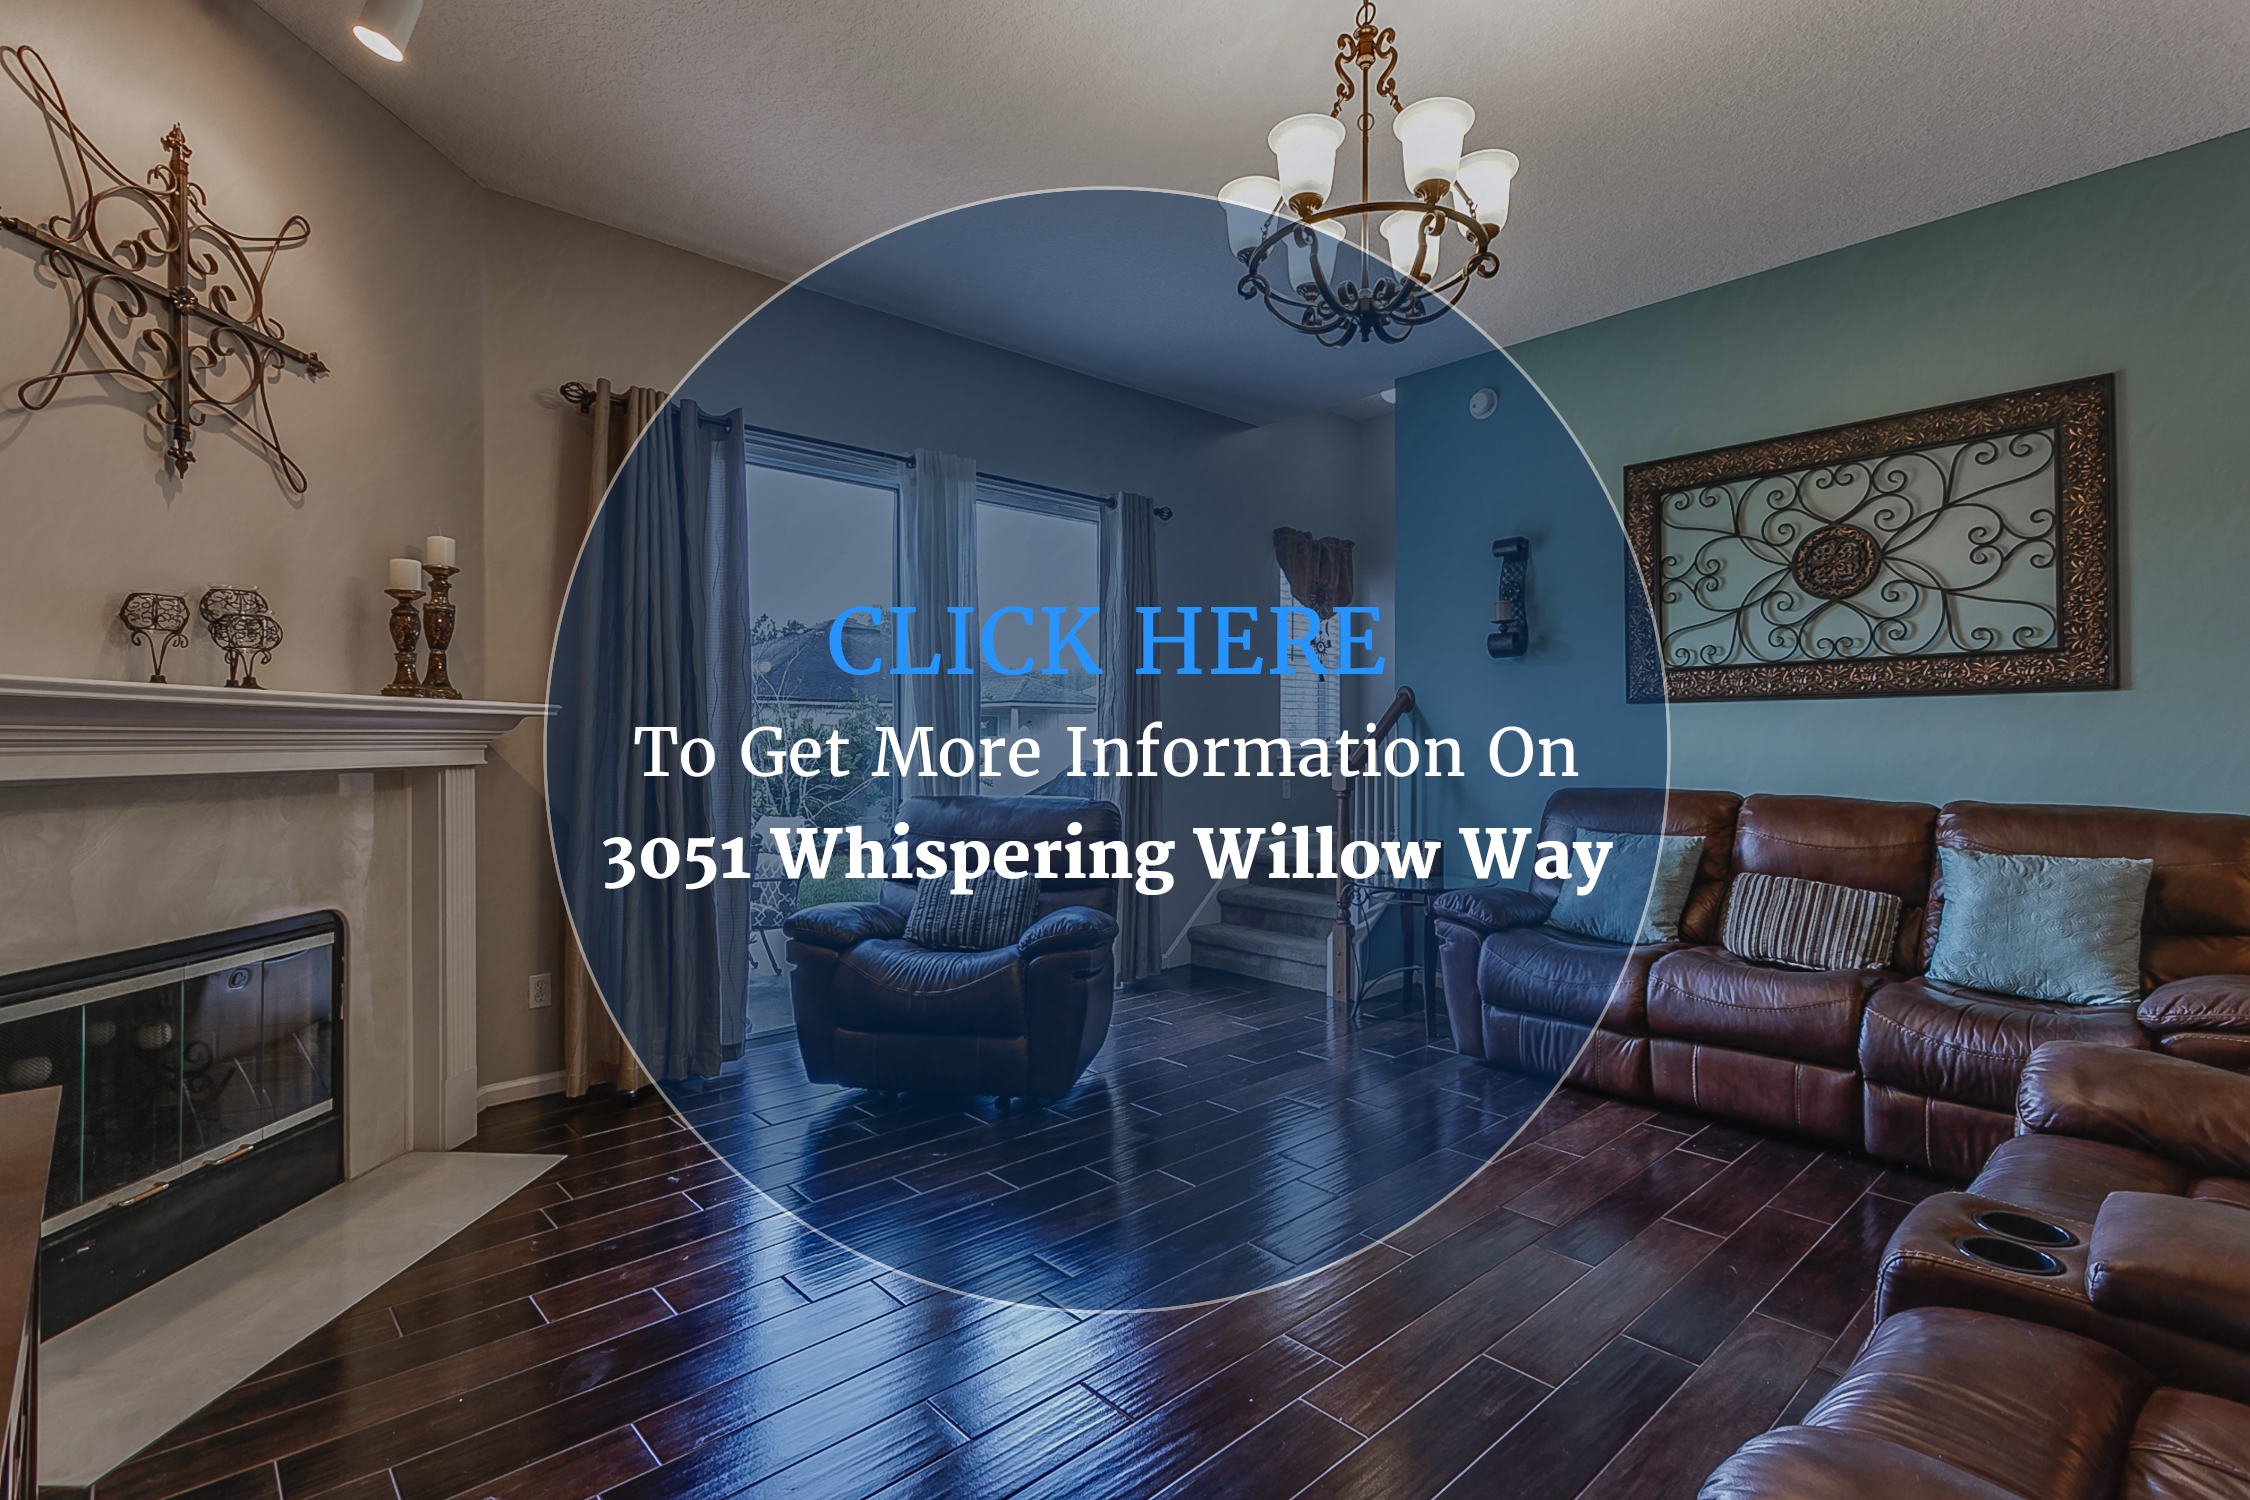 Information on Whispering Willow Way- Victoria gregory